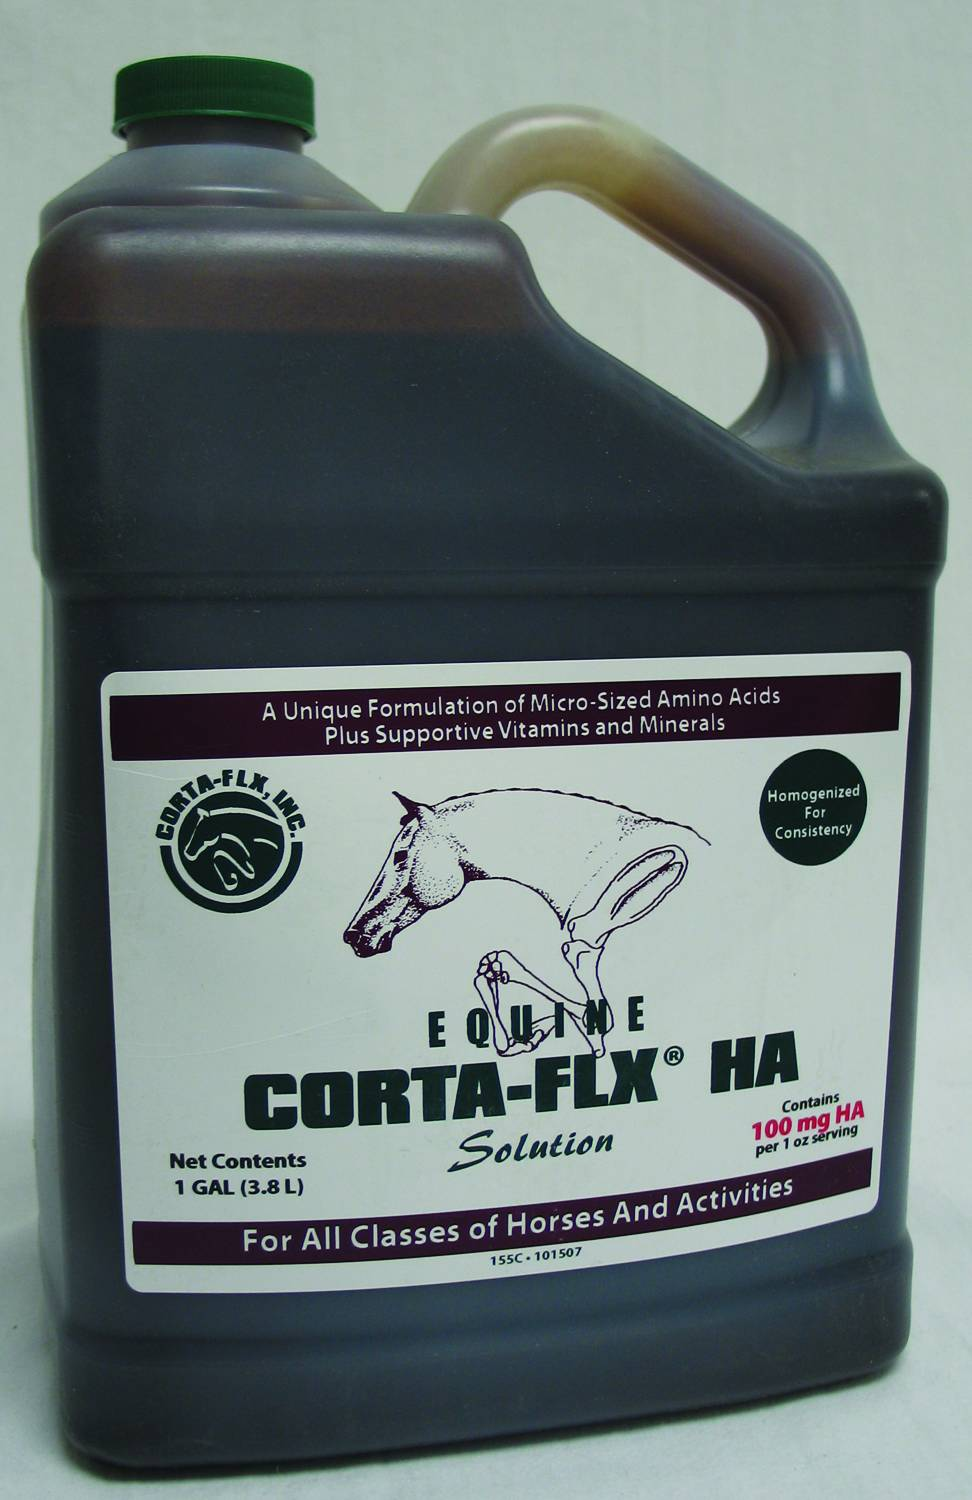 Corta-Flx Ha 100 Solution